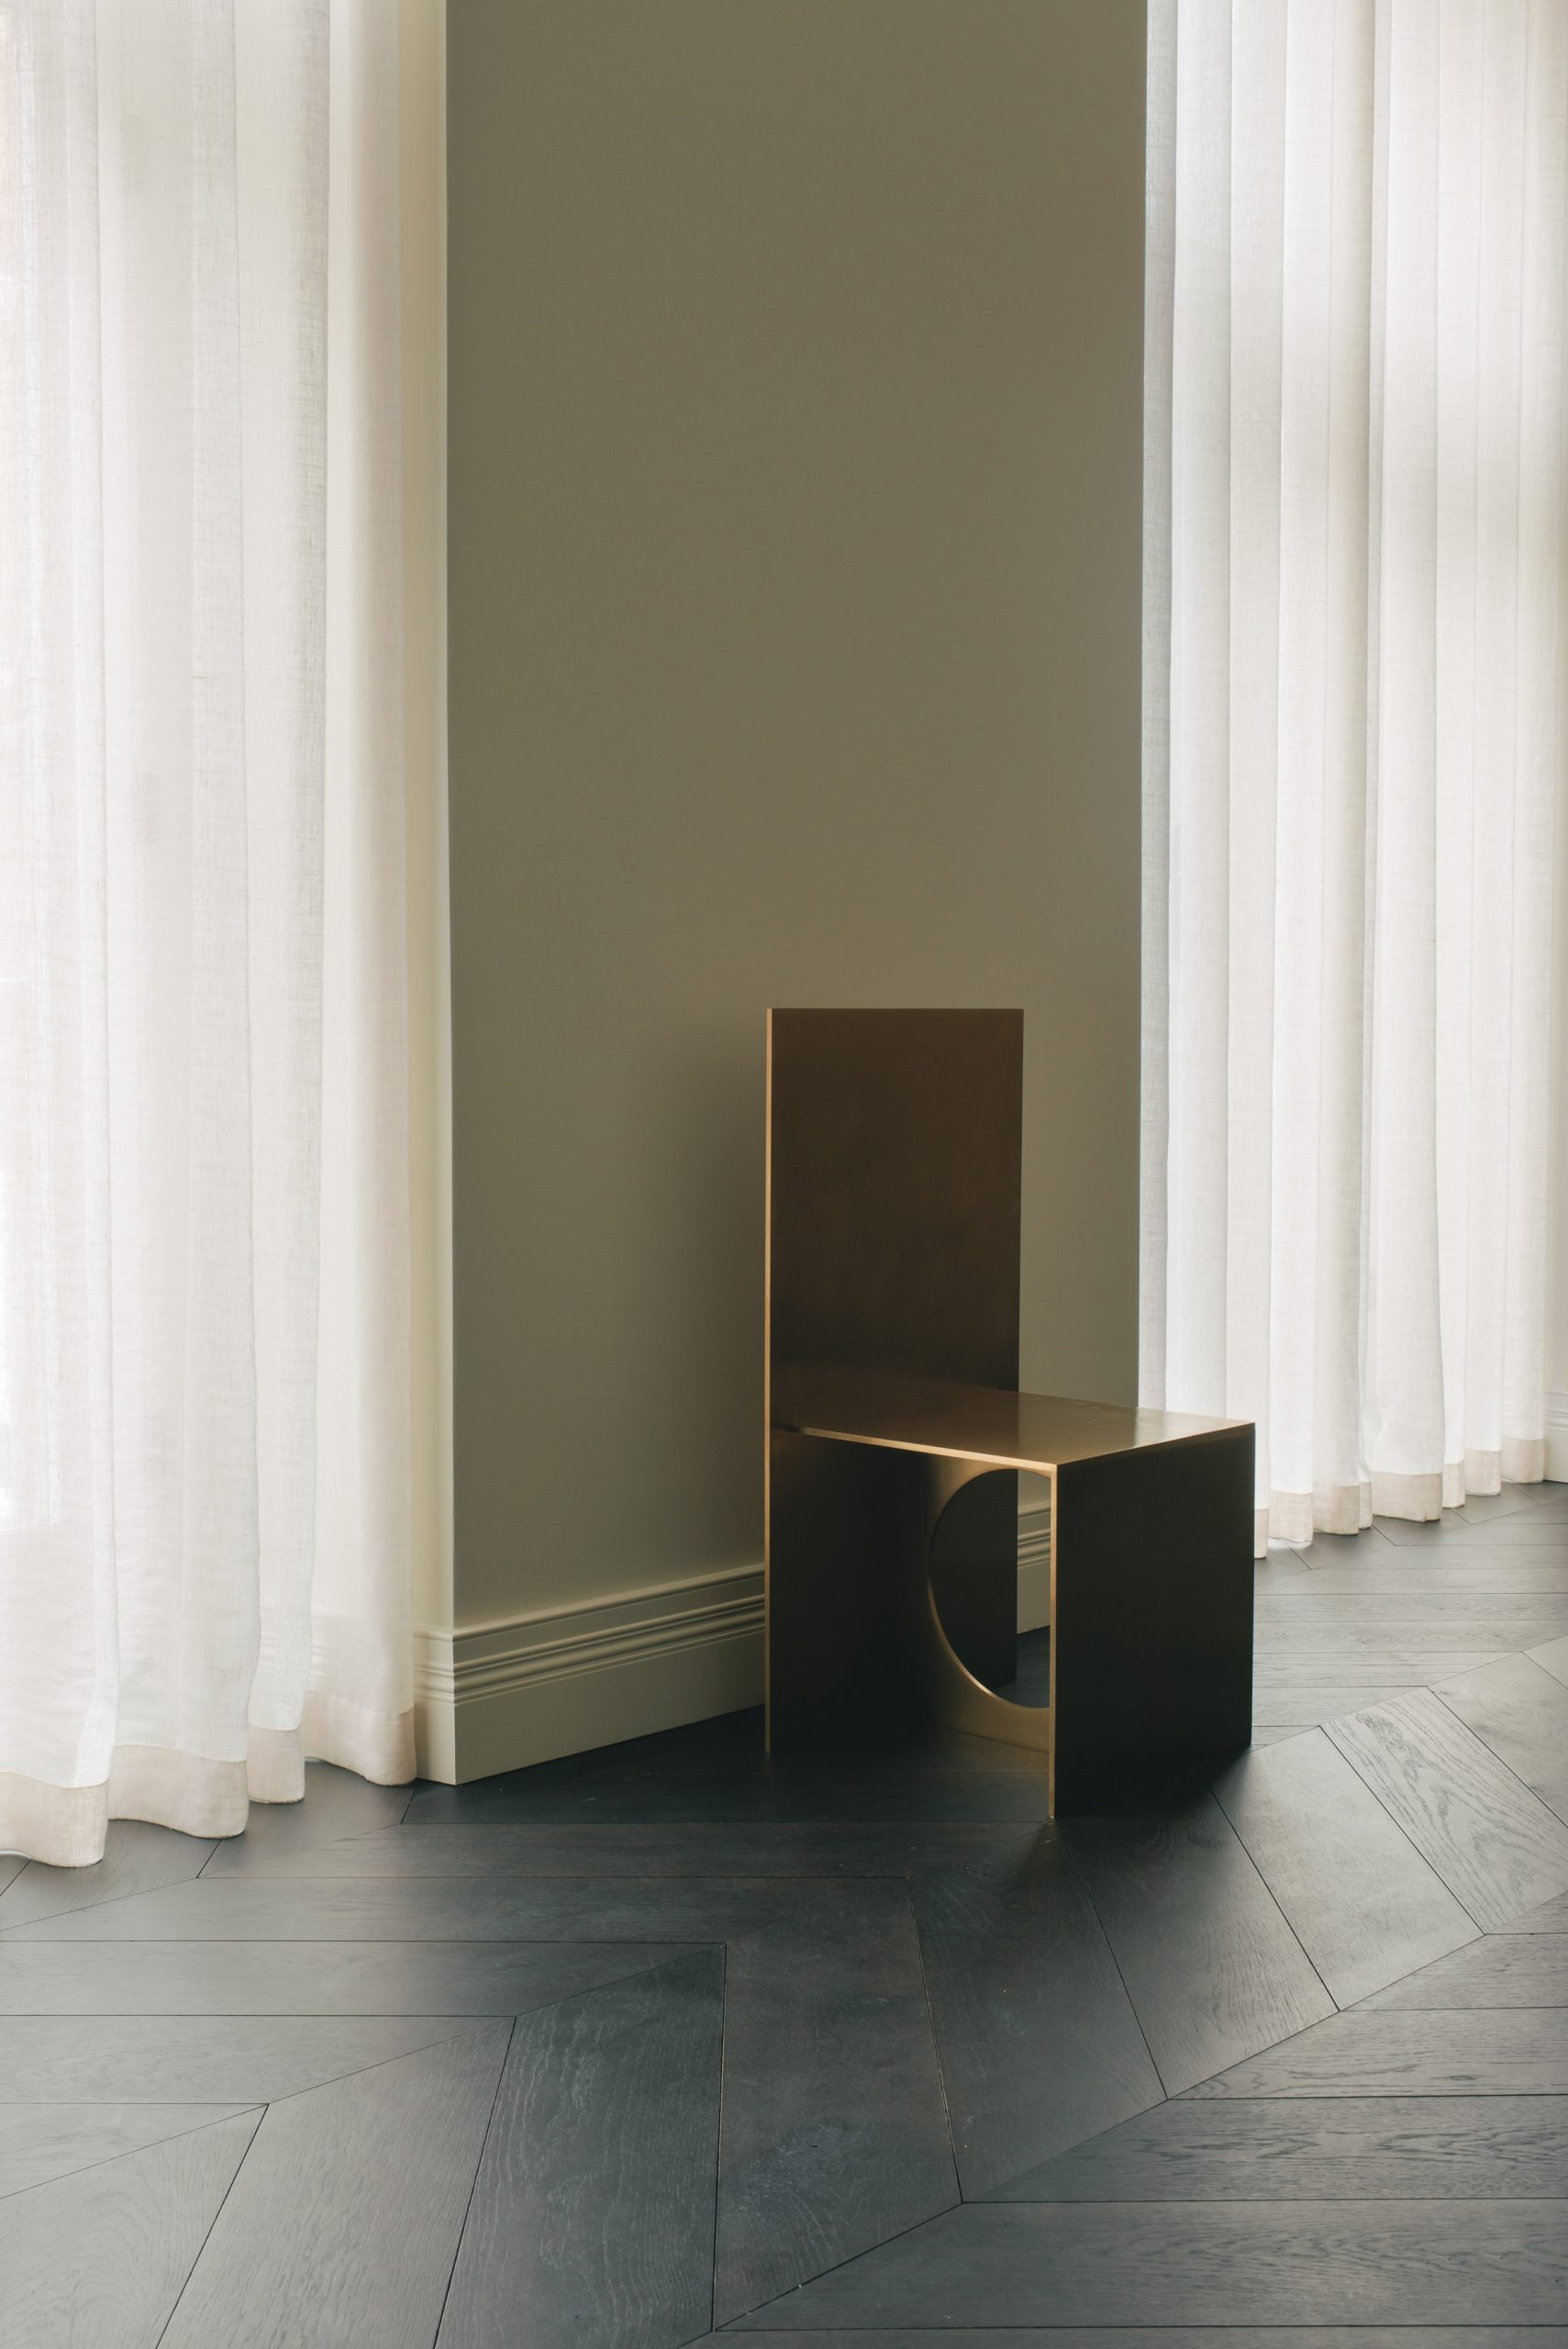 Gold-coloured chair in London office by Hollie Bowden